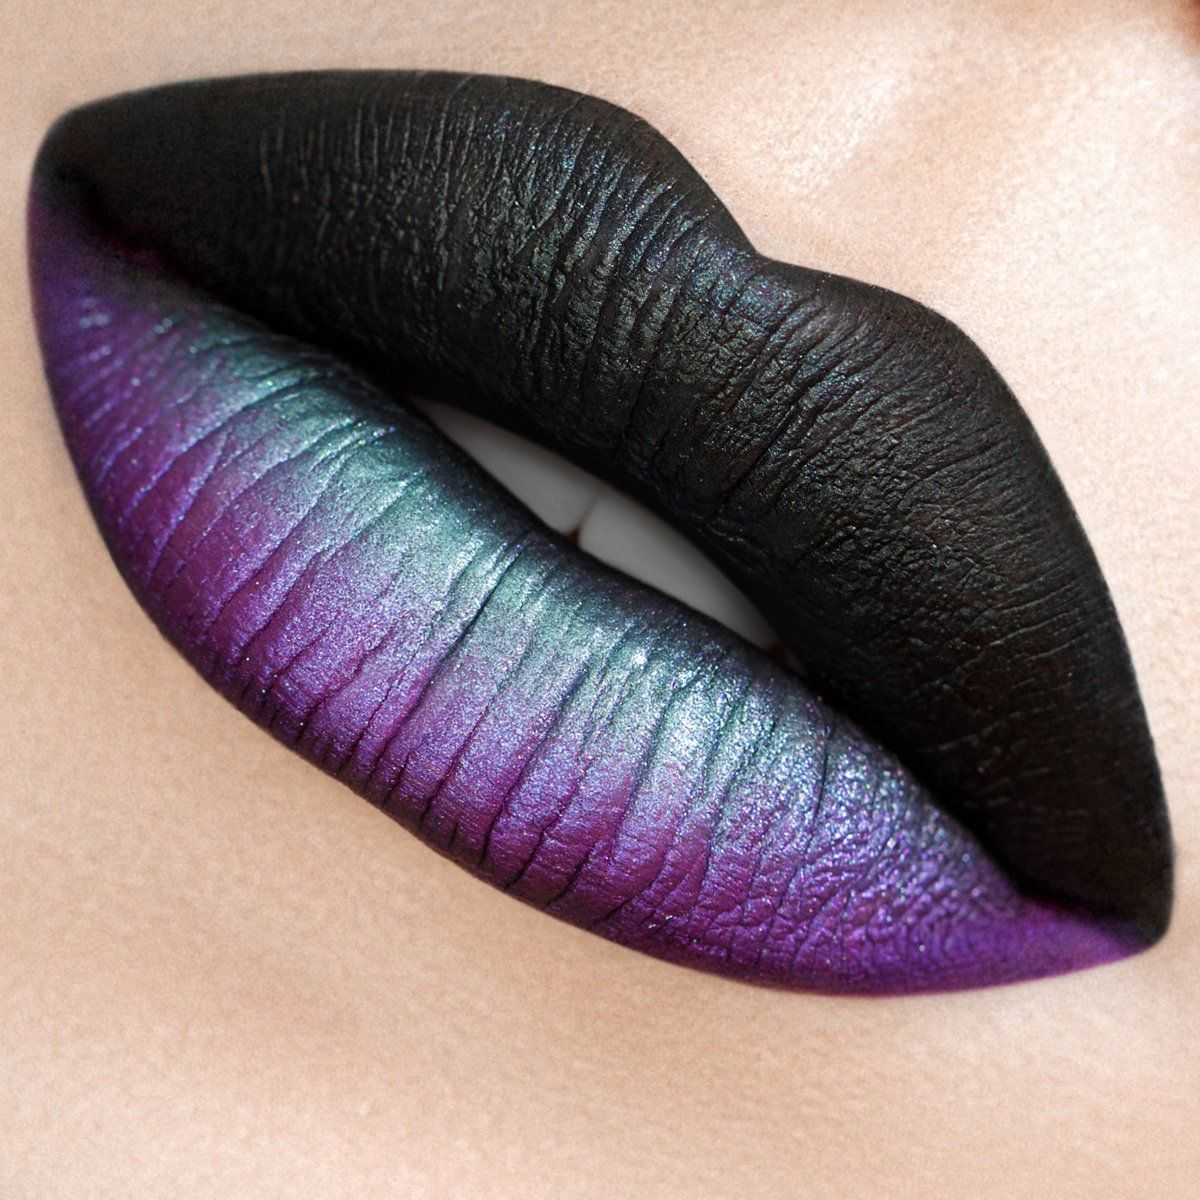 Make Up Academy Mua Muacosmetics On Twitter Lip Art Makeup Lip Art Metallic Lips